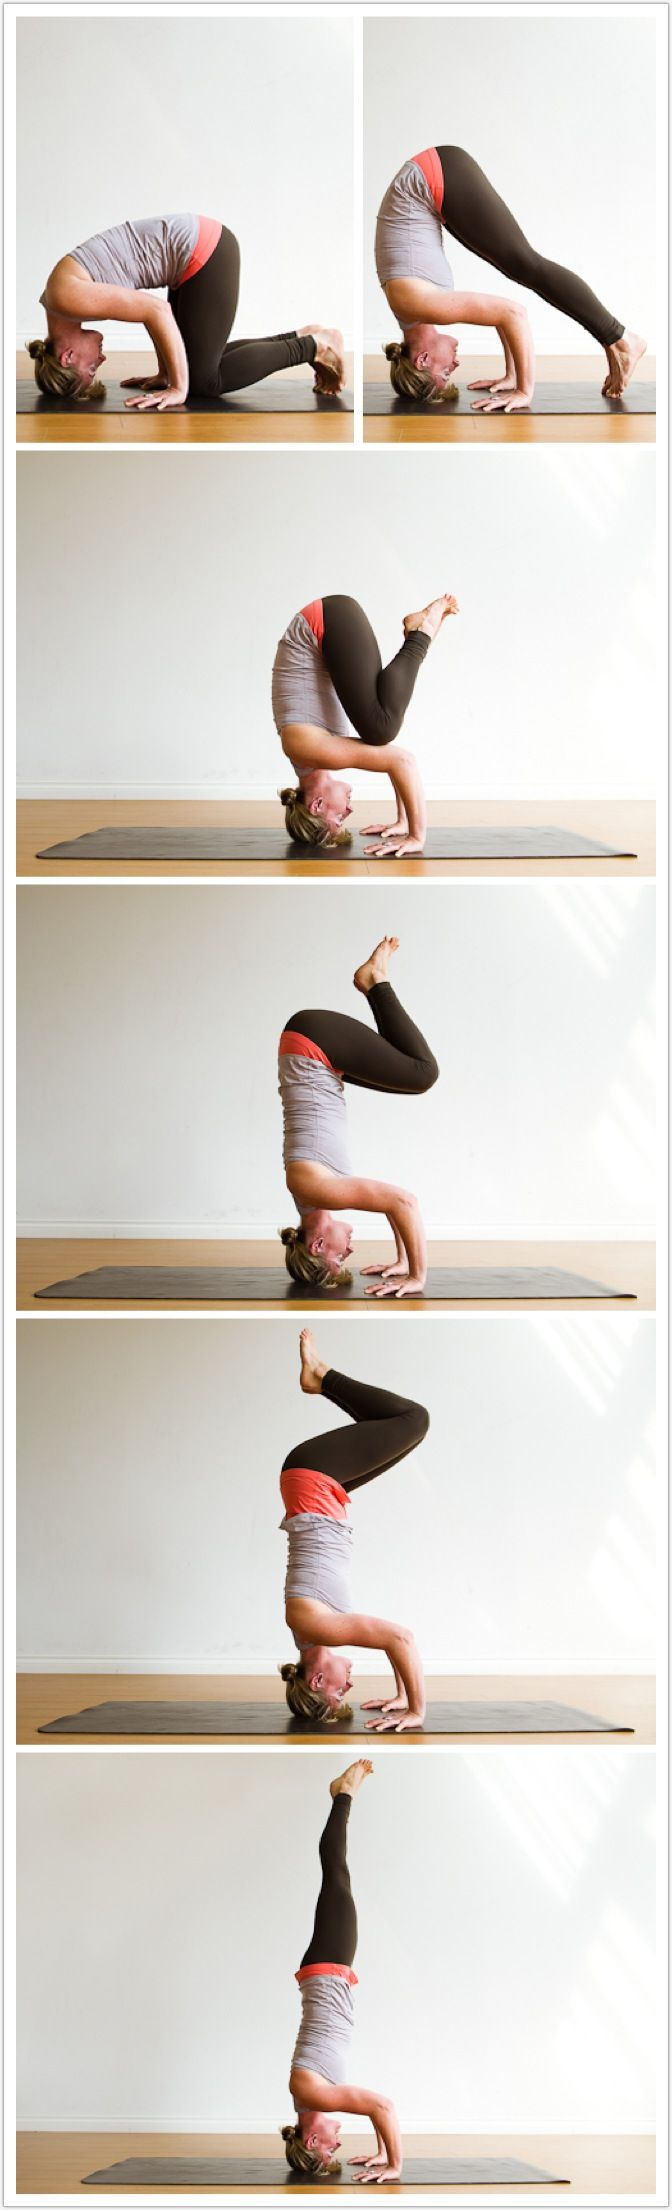 5 Steps to Headstand: http://wwwbrilliantyoga.blogspot.com/